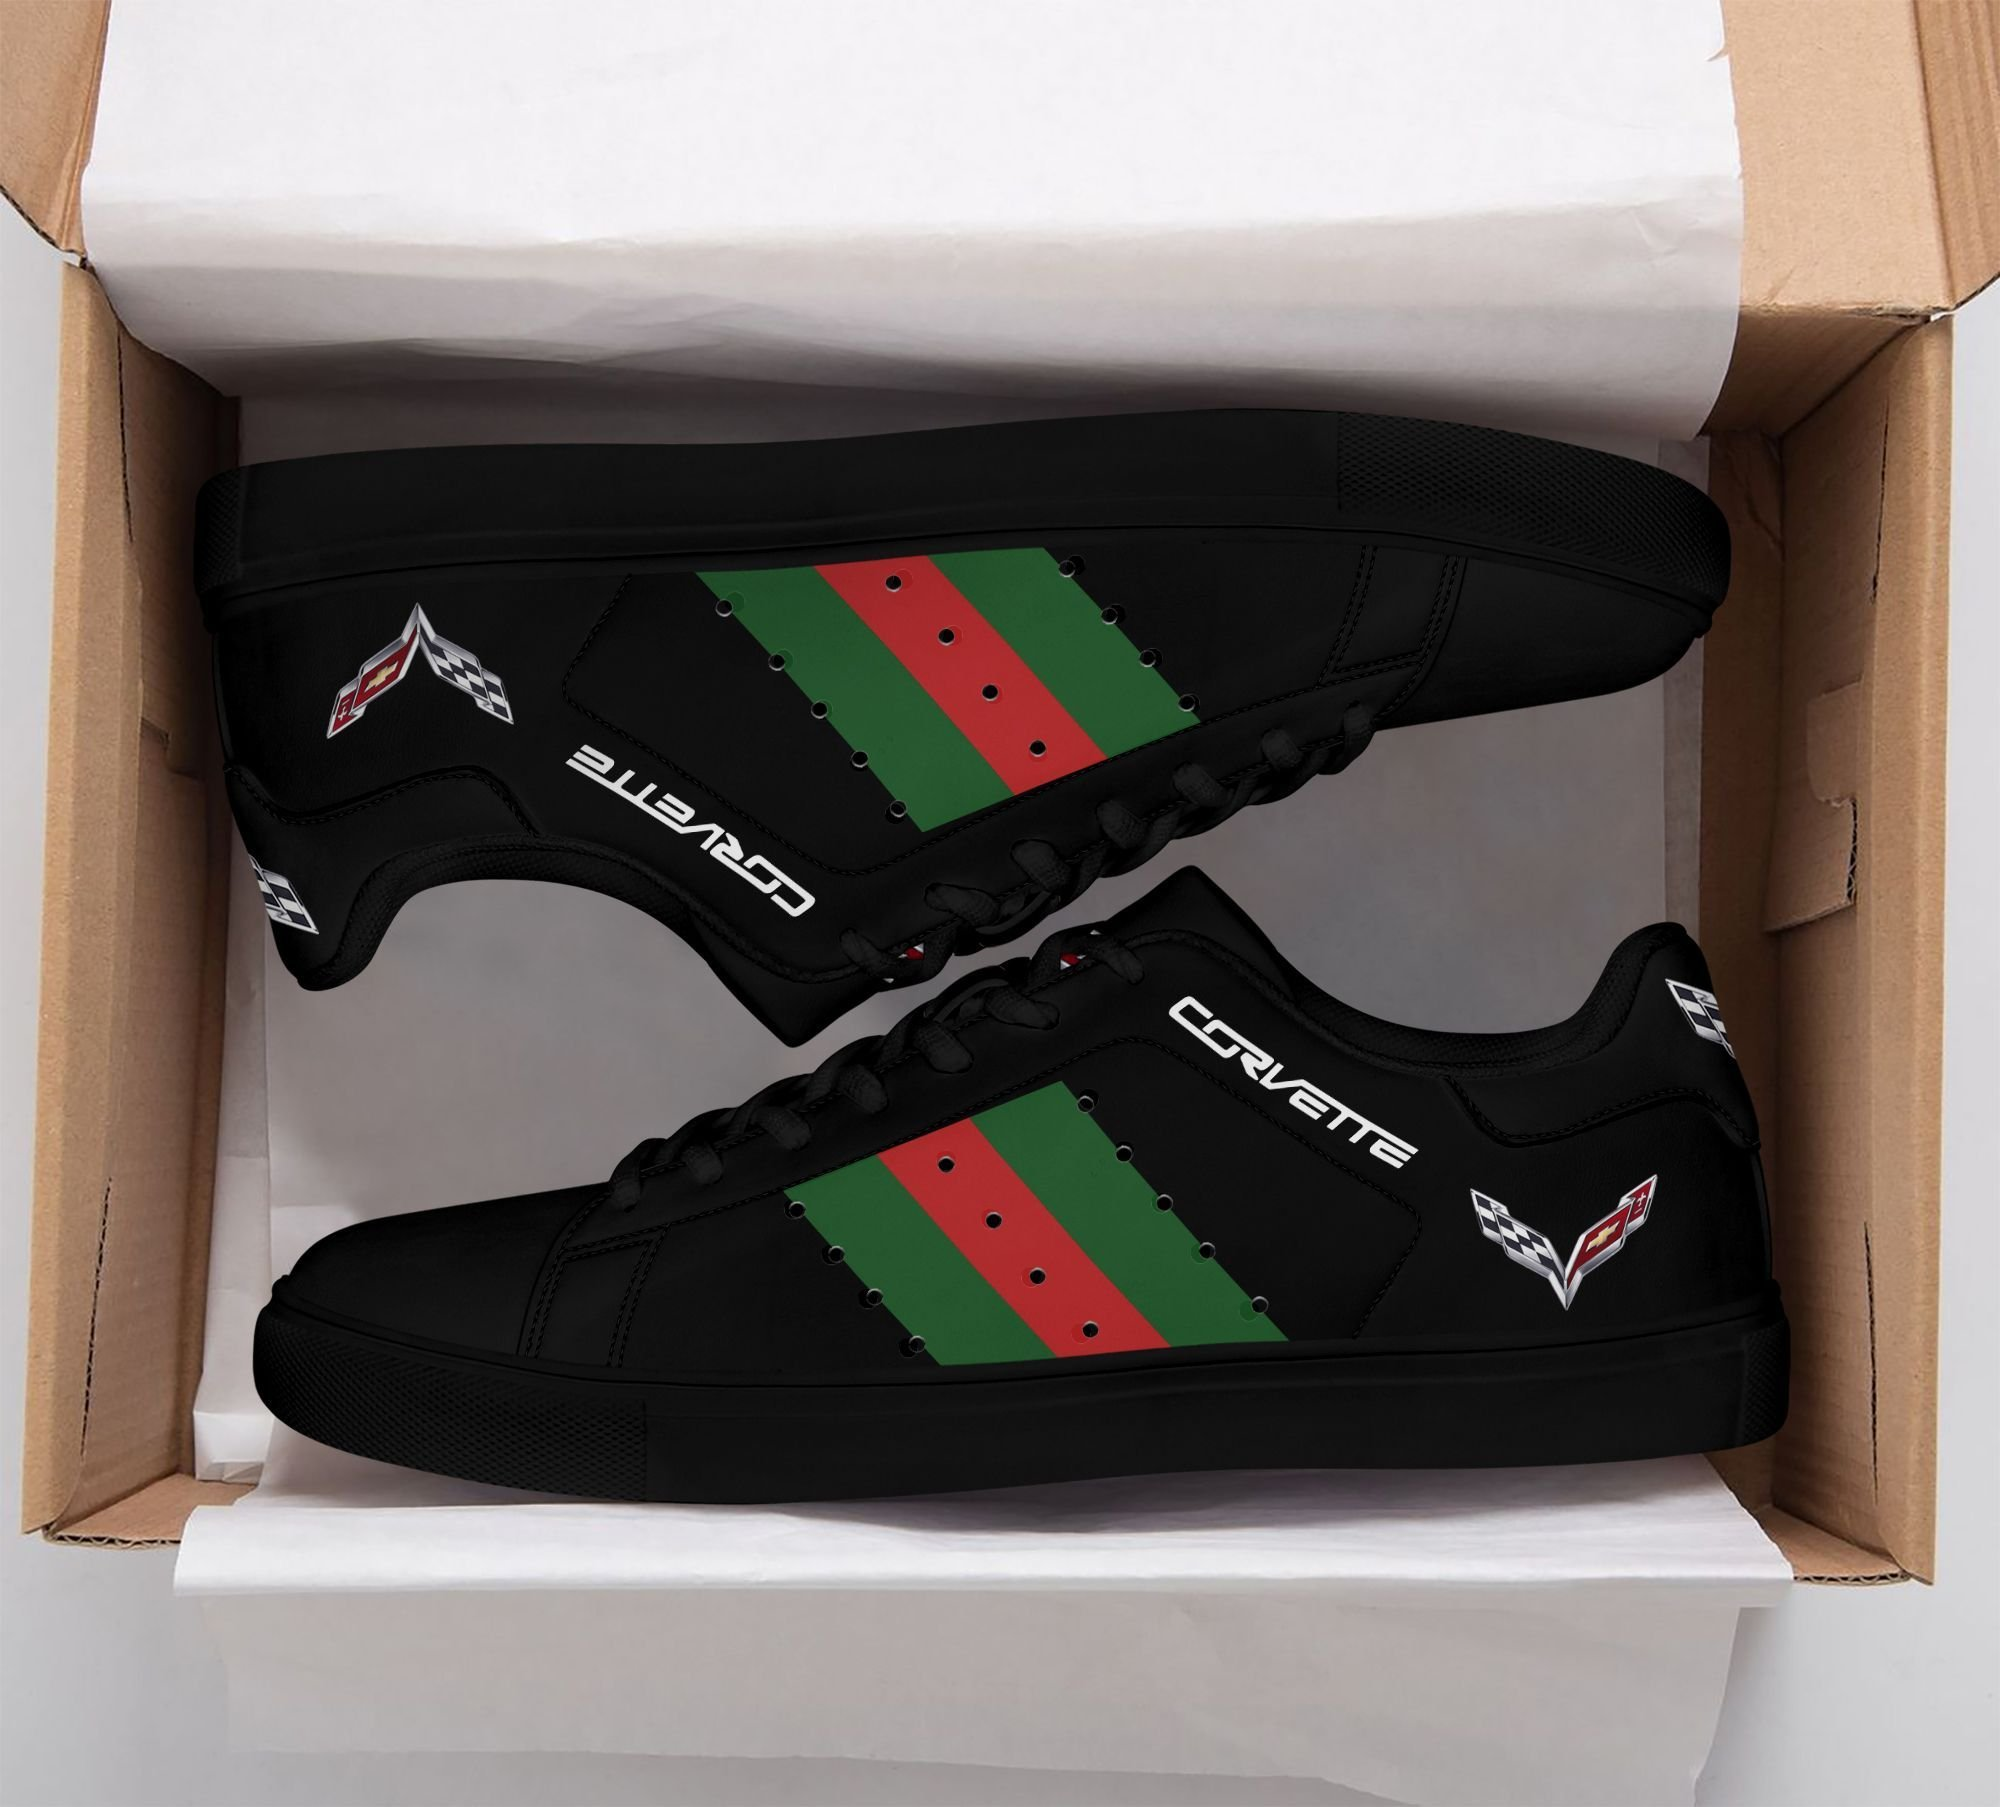 Chevrolet Corvette Green red lines Black Stan Smith Shoes